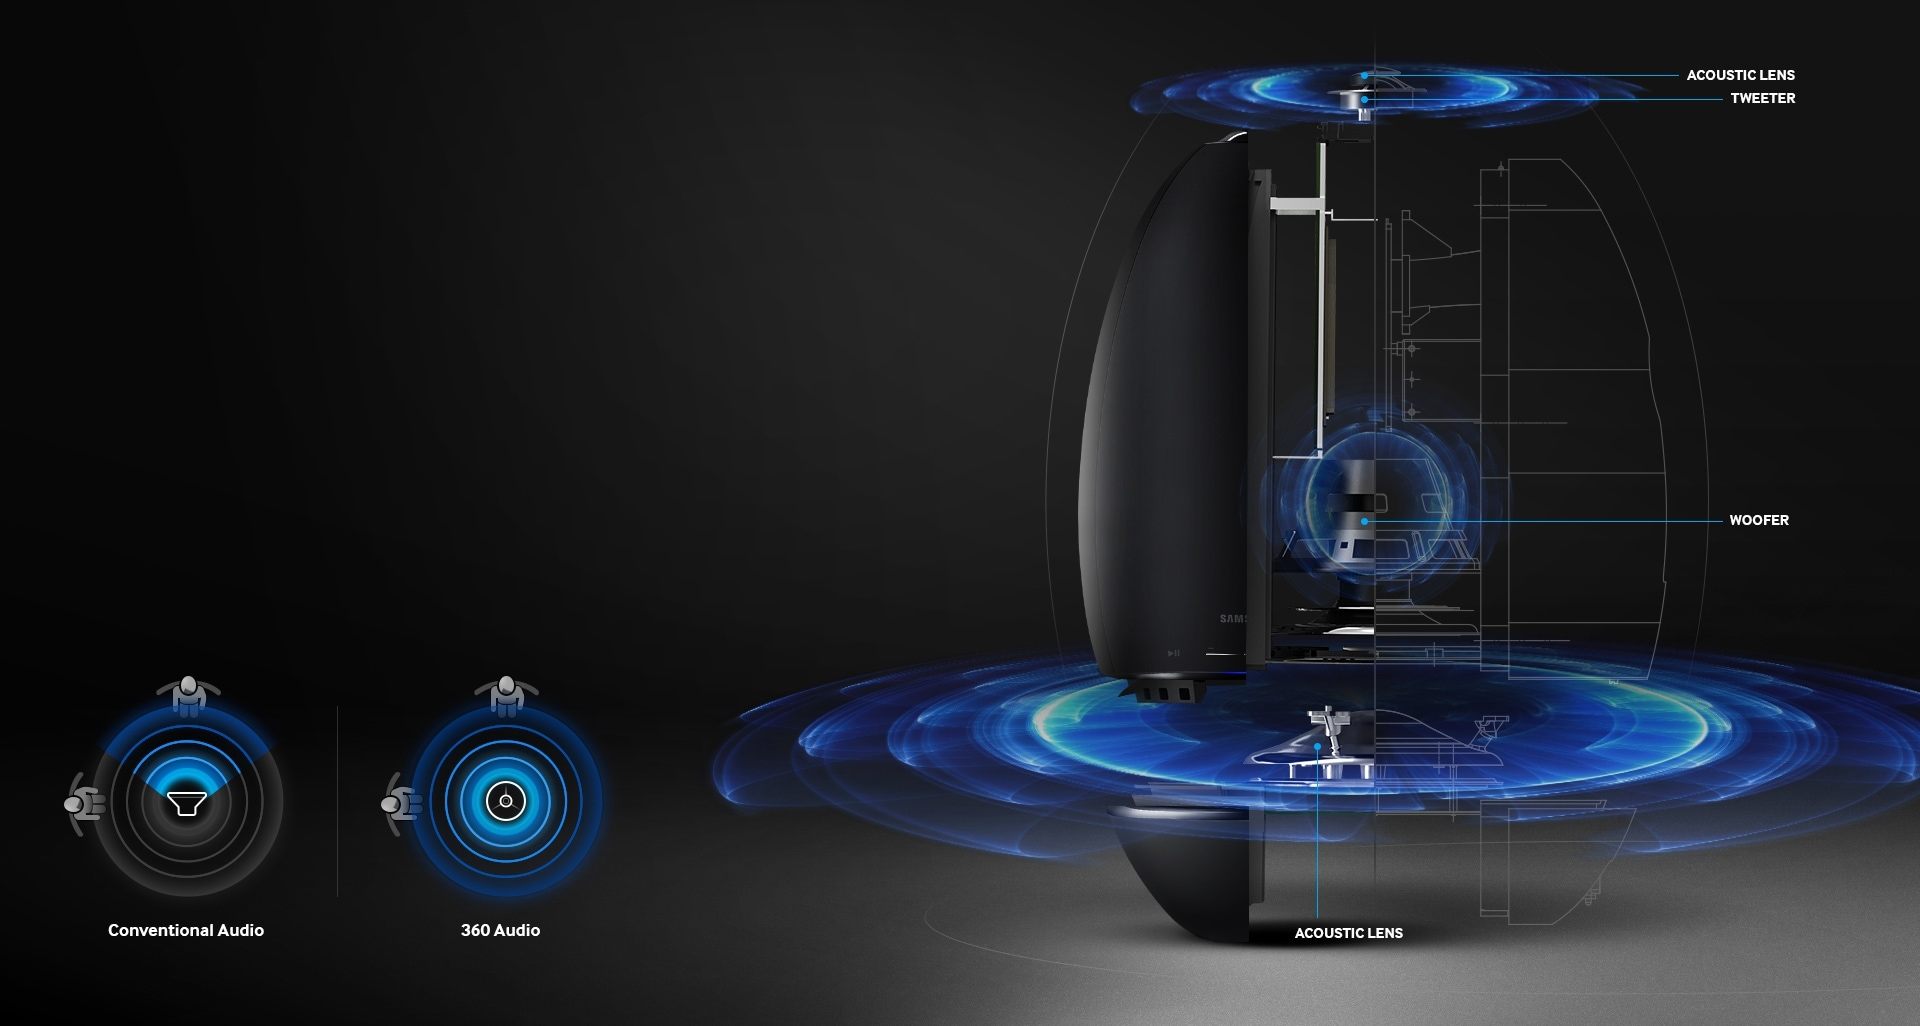 360 omni-directional sound